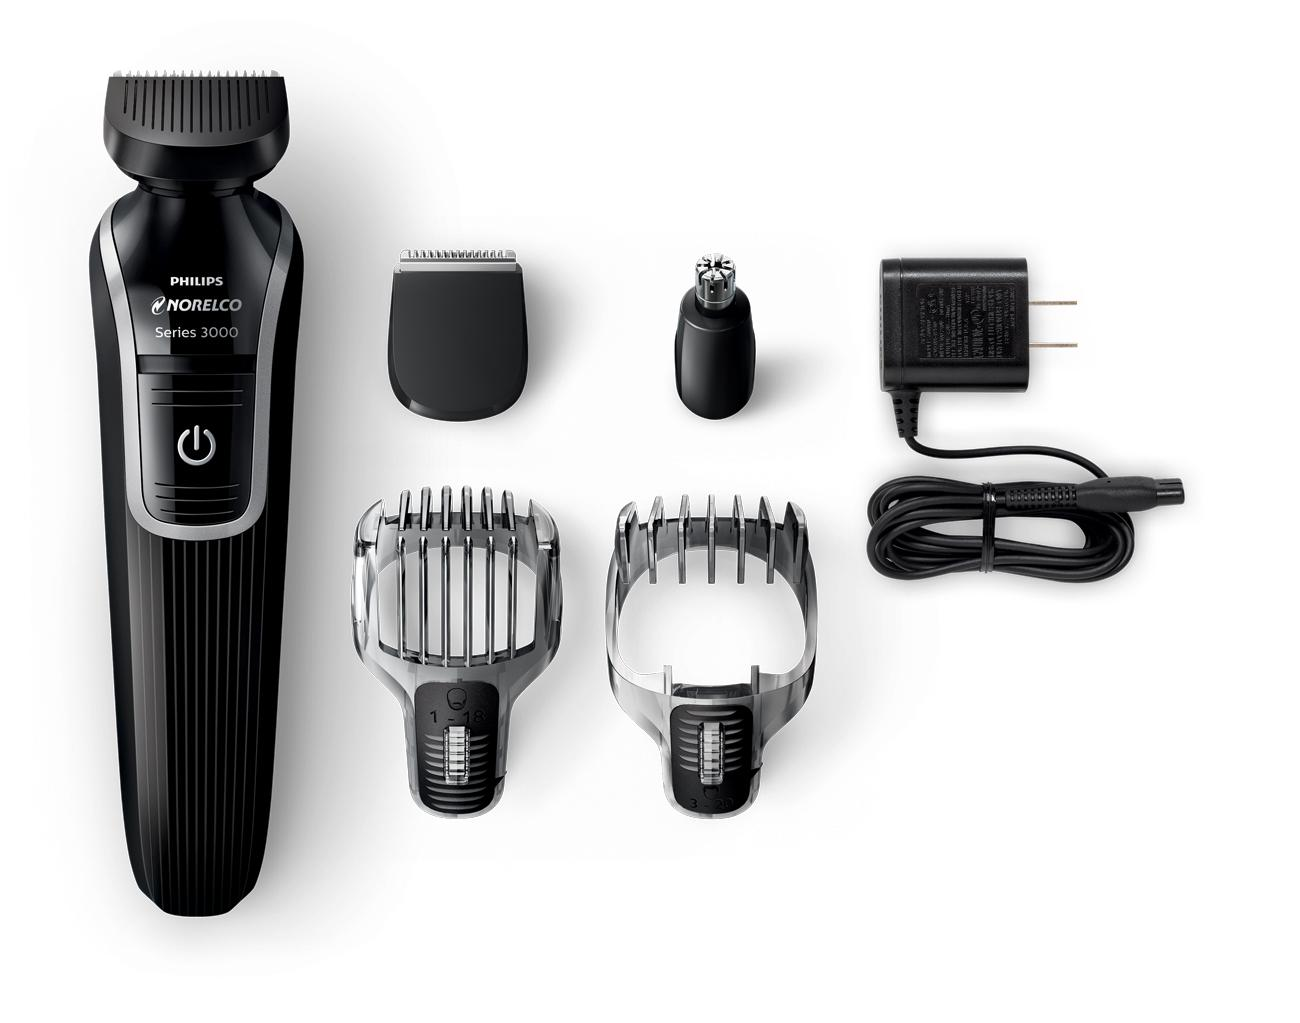 phillips norelco multigroom grooming beard trimmer rechargeable shaver kit ear ebay. Black Bedroom Furniture Sets. Home Design Ideas